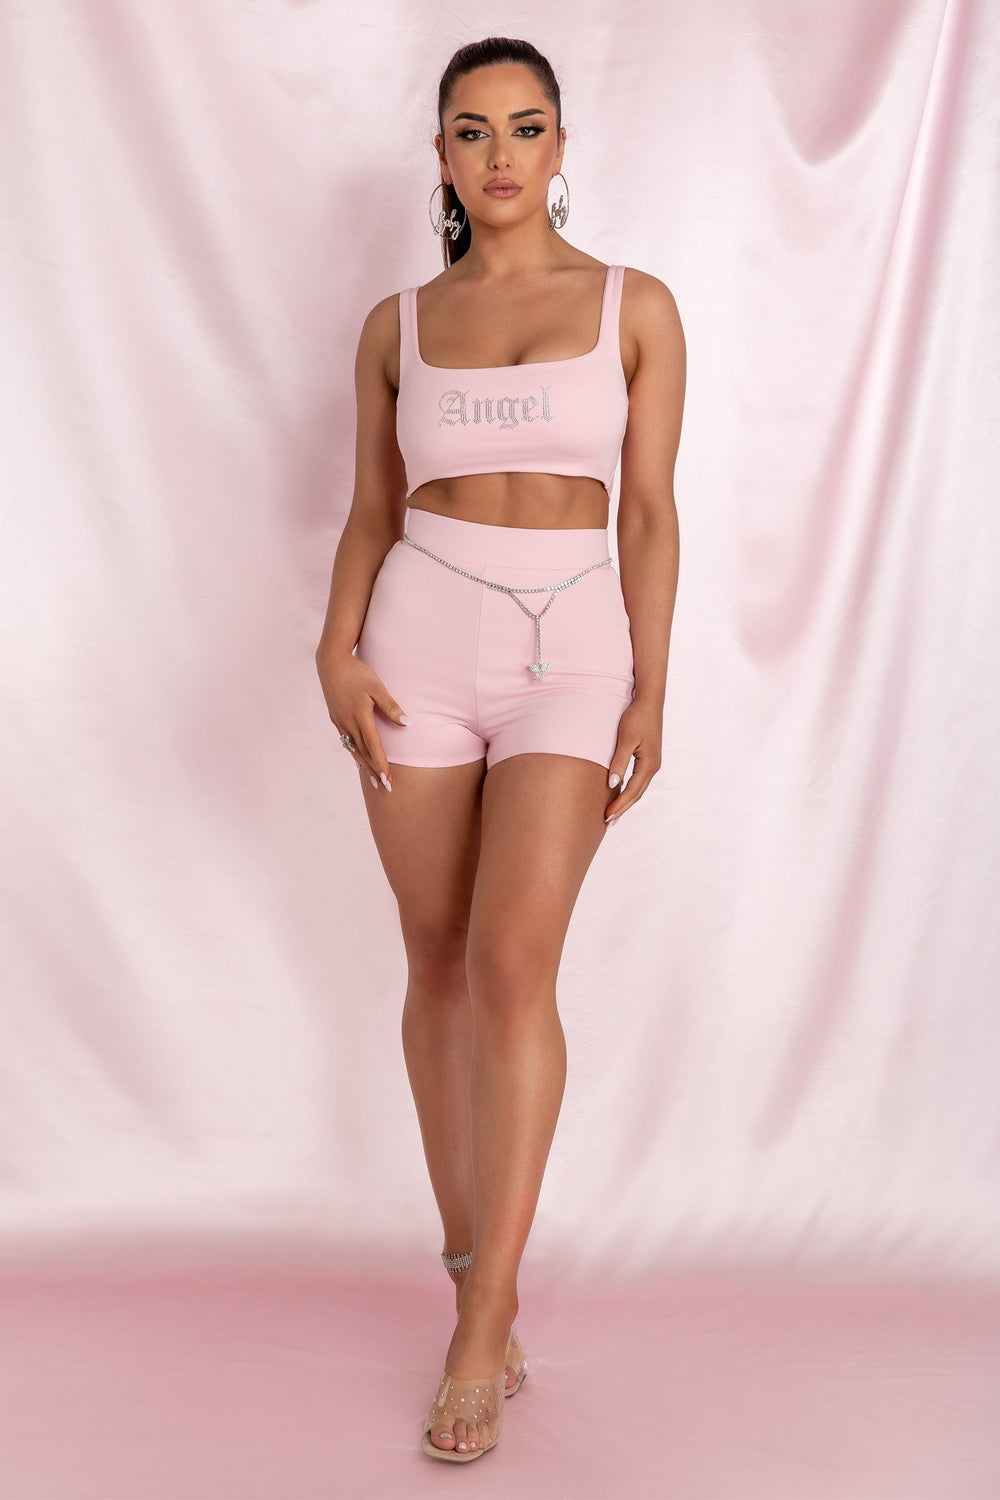 Molly 'Angel' Crop Top - Baby Pink - MESHKI